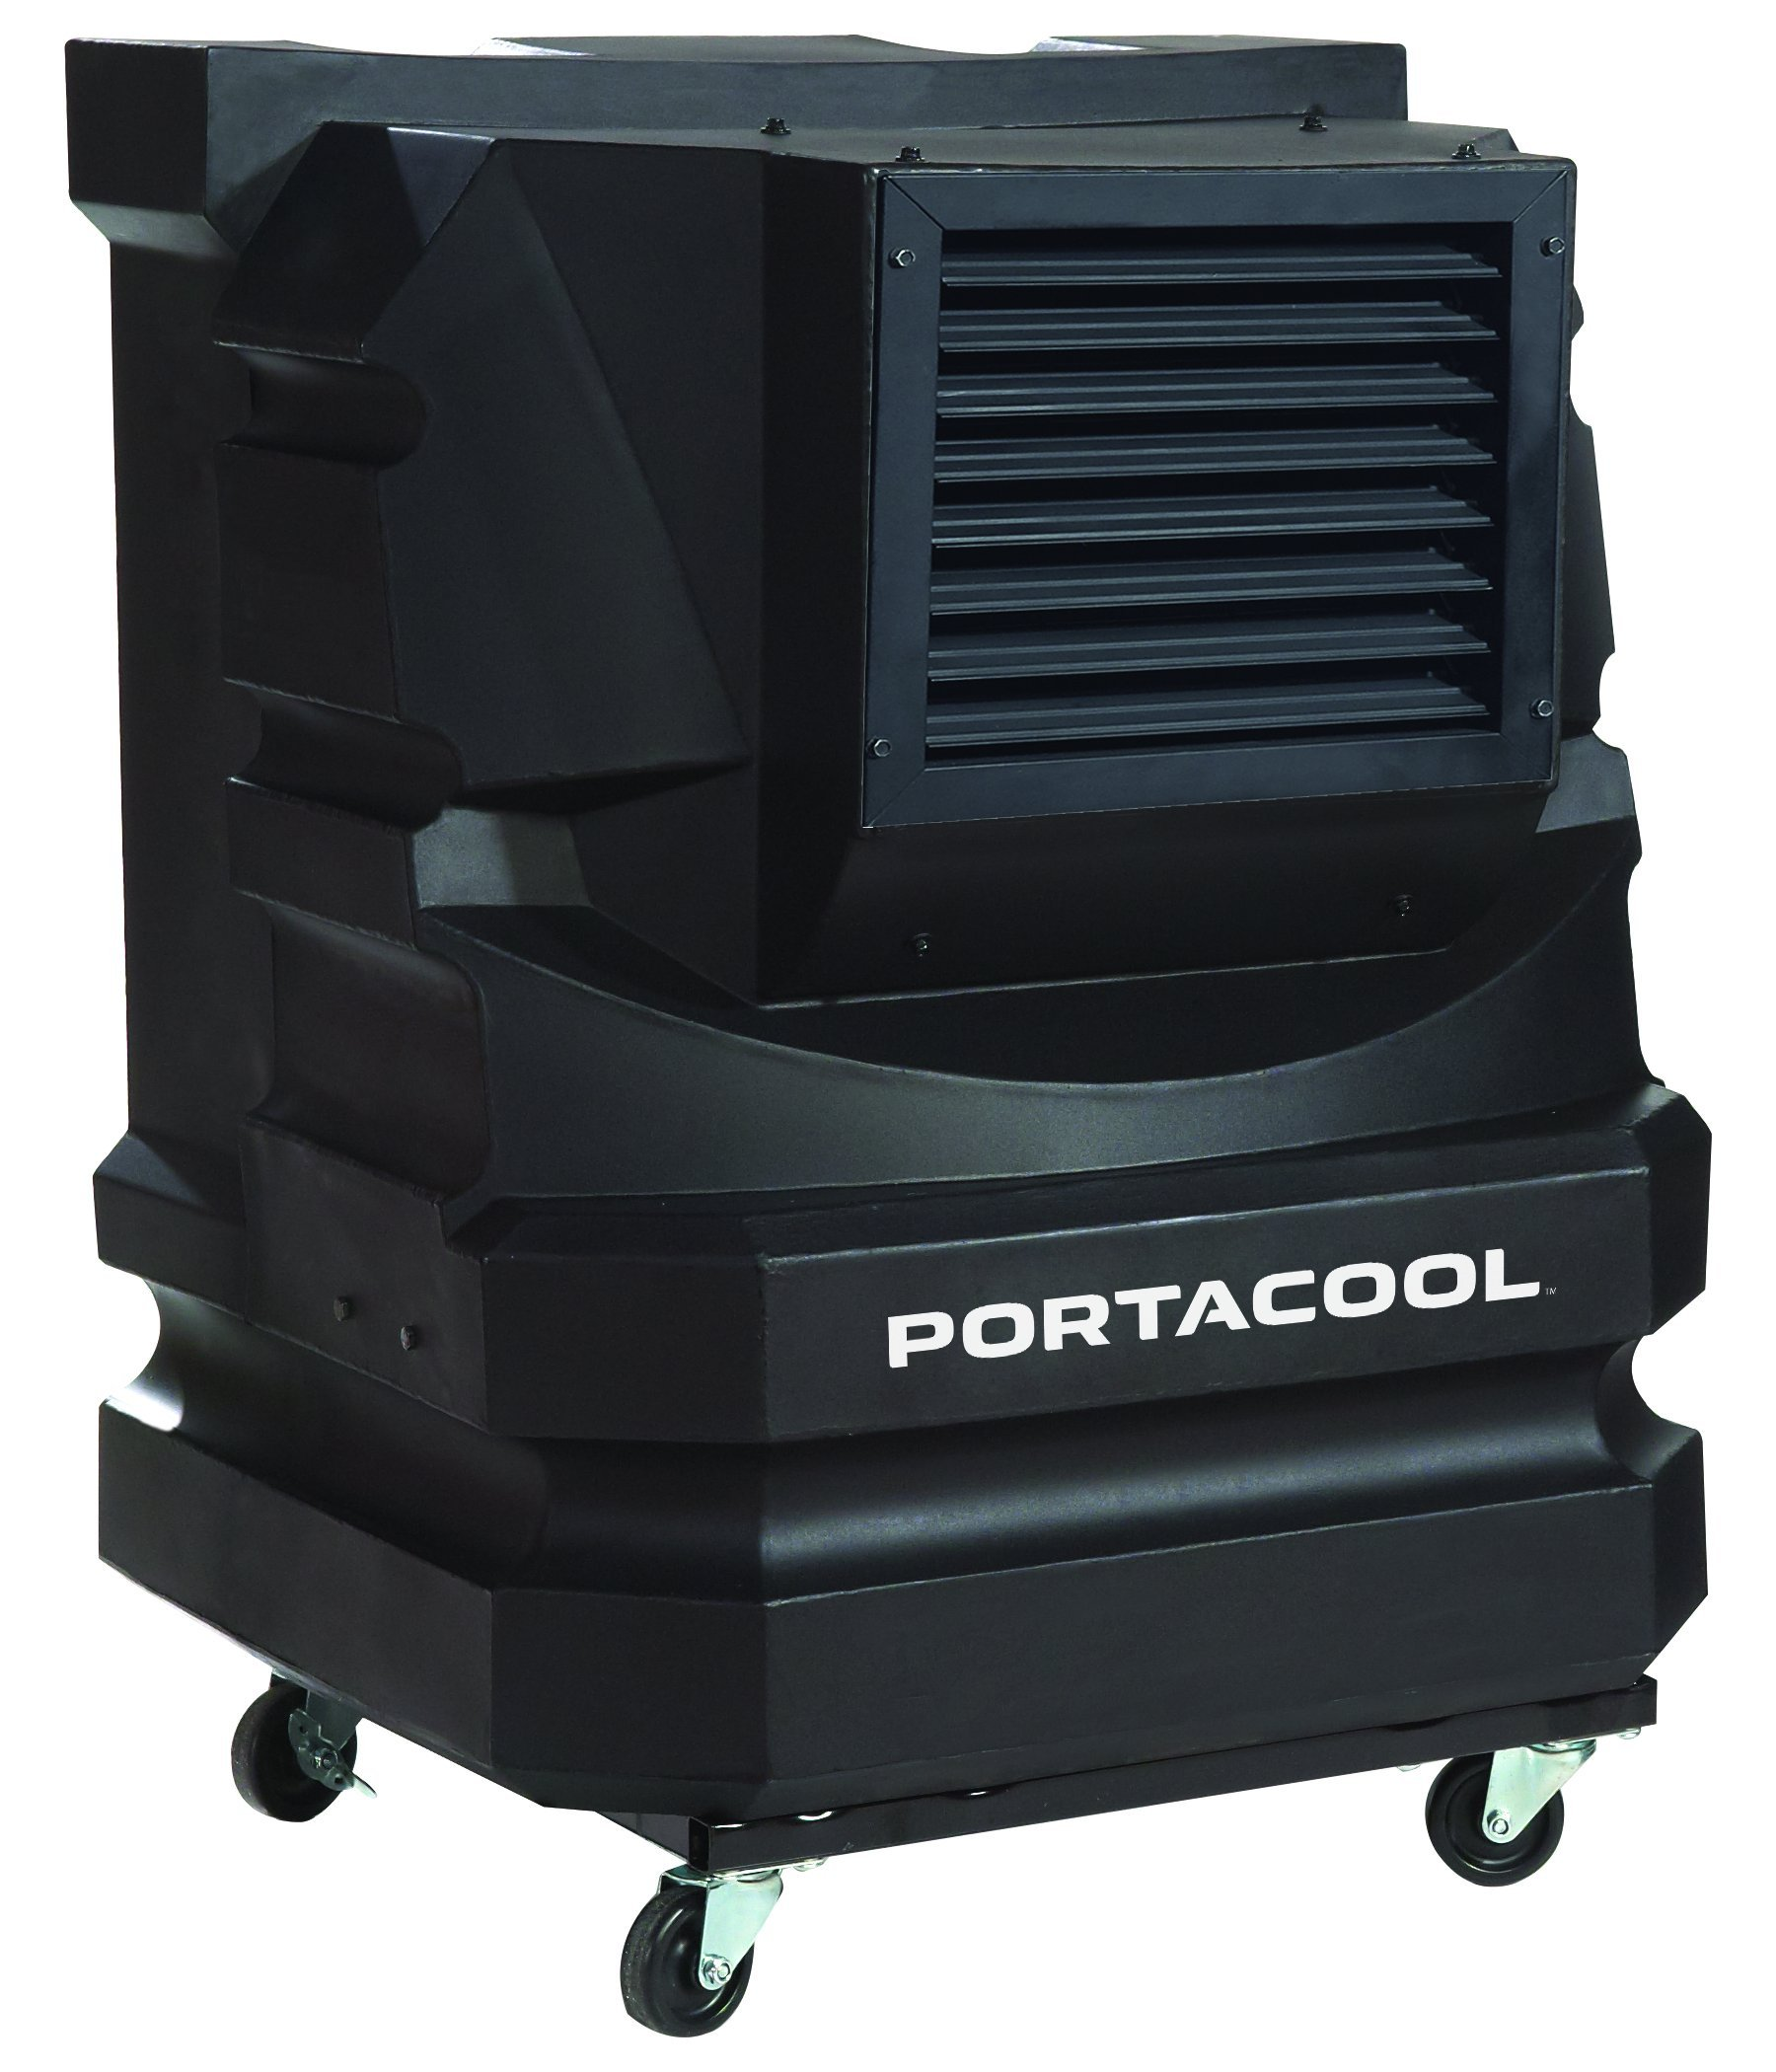 Portacool PAC2KCYC01 Cyclone 3000 Portable Evaporative Cooler with 700 Square Foot Cooling Capacity, Black